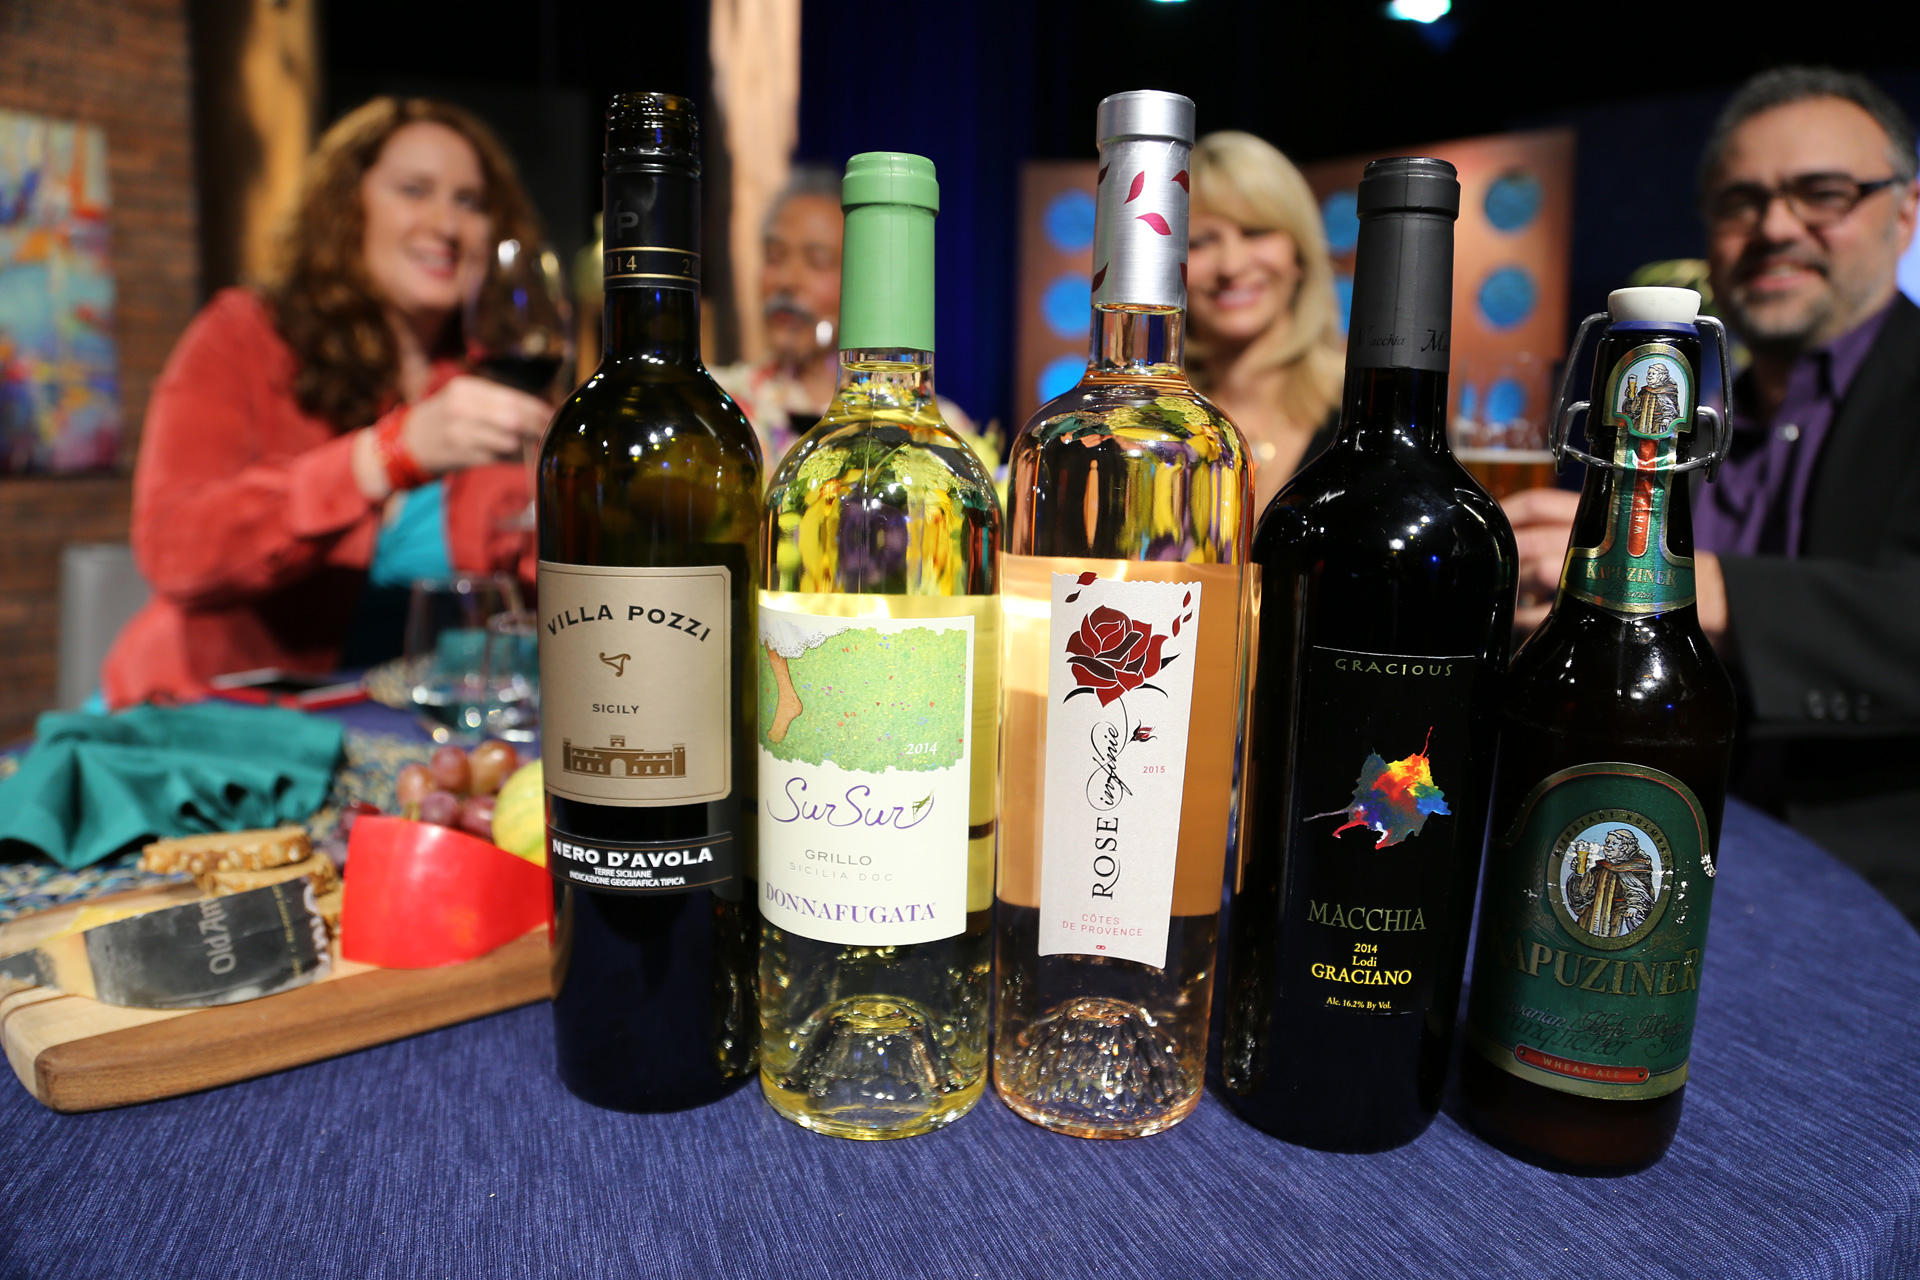 Wines that guests drank on the set of the thirteenth episode of season 11.